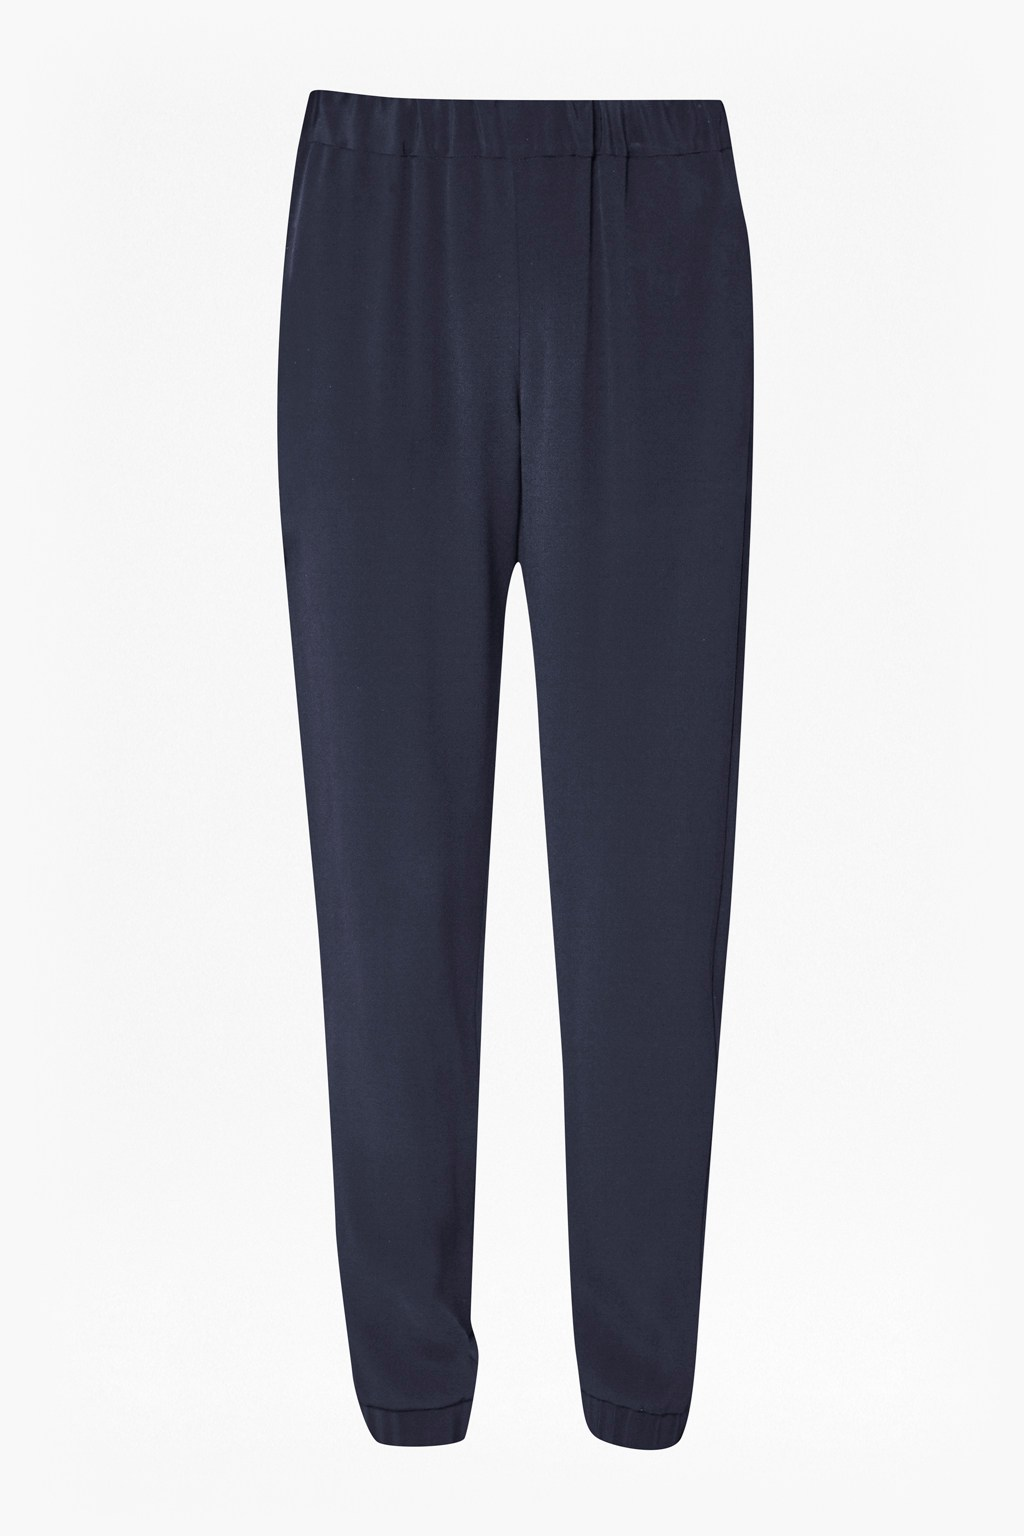 Darcy Drape Crepe Trousers - black